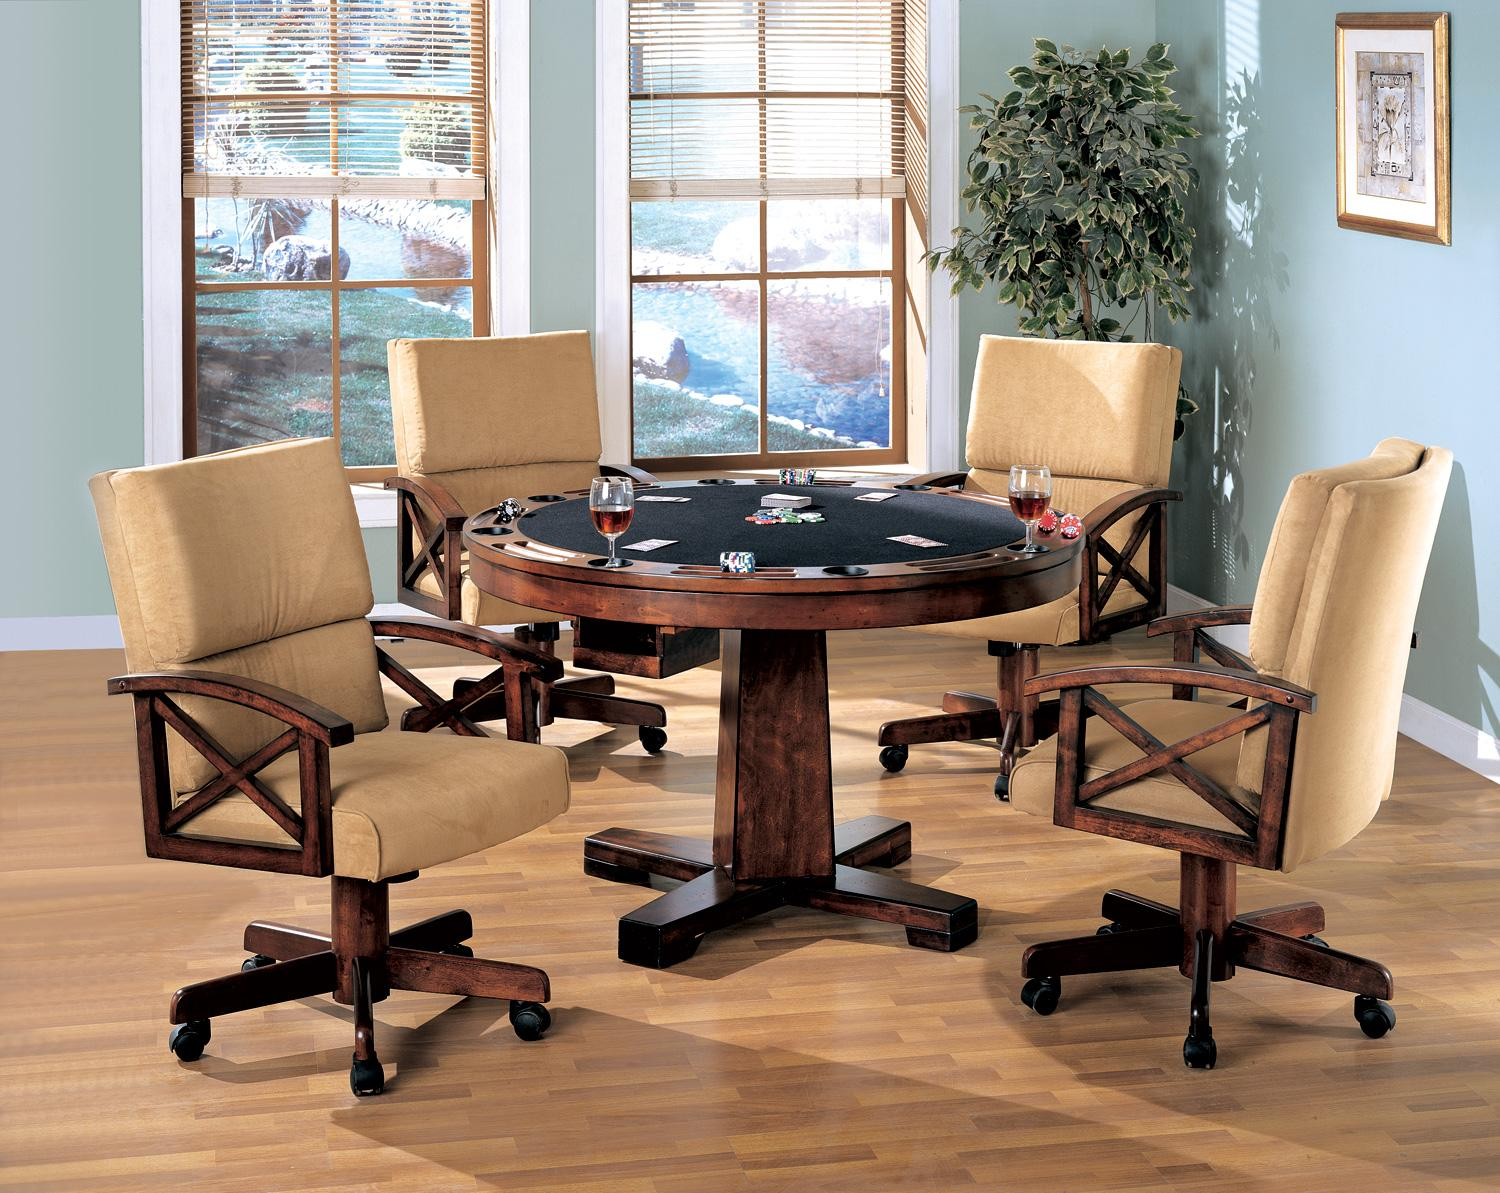 Mitchell 5 pcs set game table and 4 chairs coaster co - 3 In 1 Game Tables Game Tables For Less Poker Table Bumper Pool